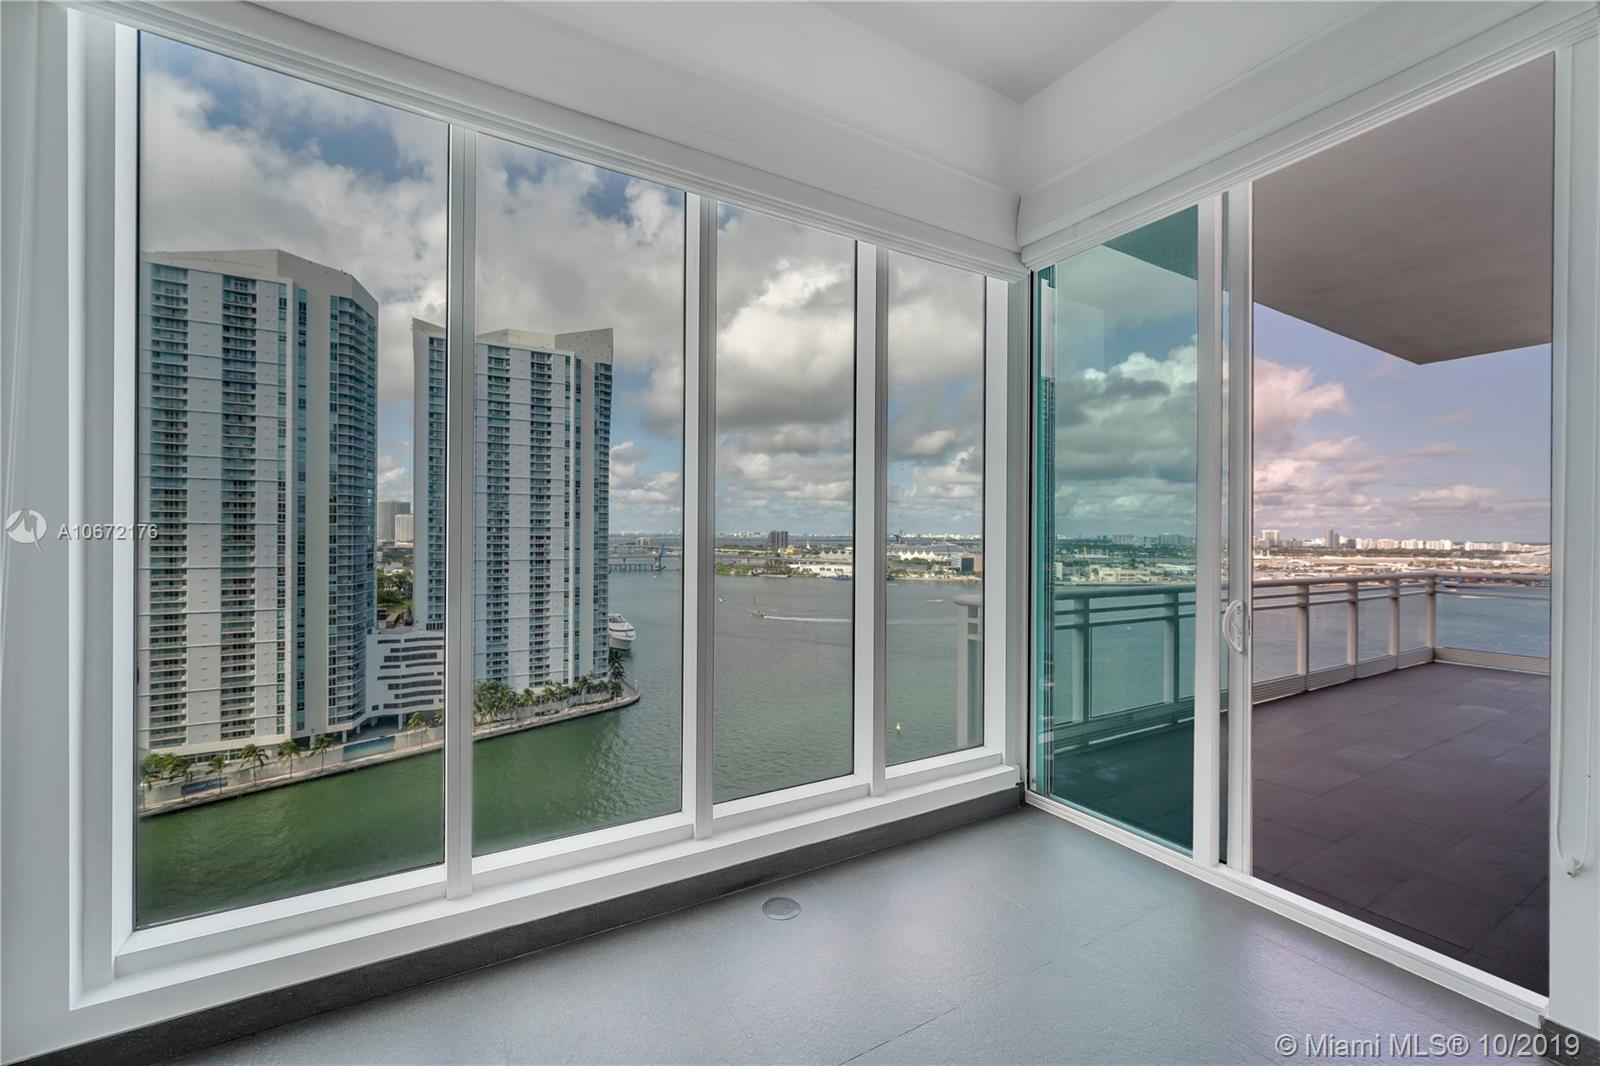 900 Brickell key blvd.-1803 miami-fl-33131-a10672176-Pic42